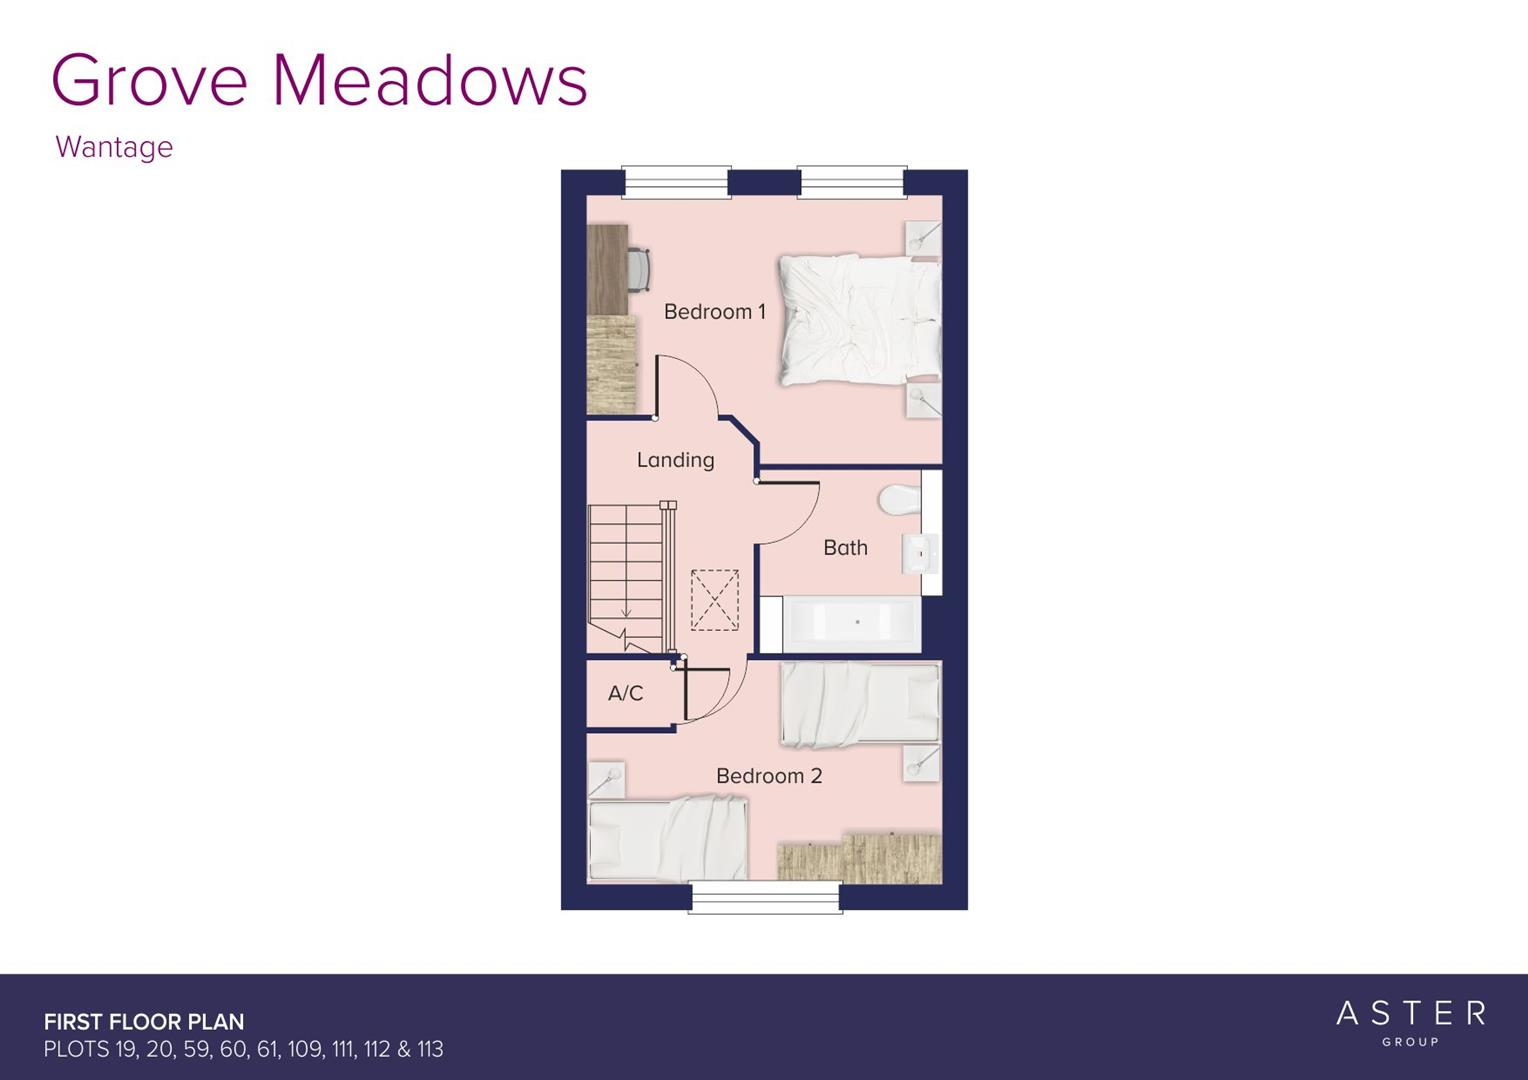 Grove Meadows Wantage_Plots 19 20 59 60 61 109 111